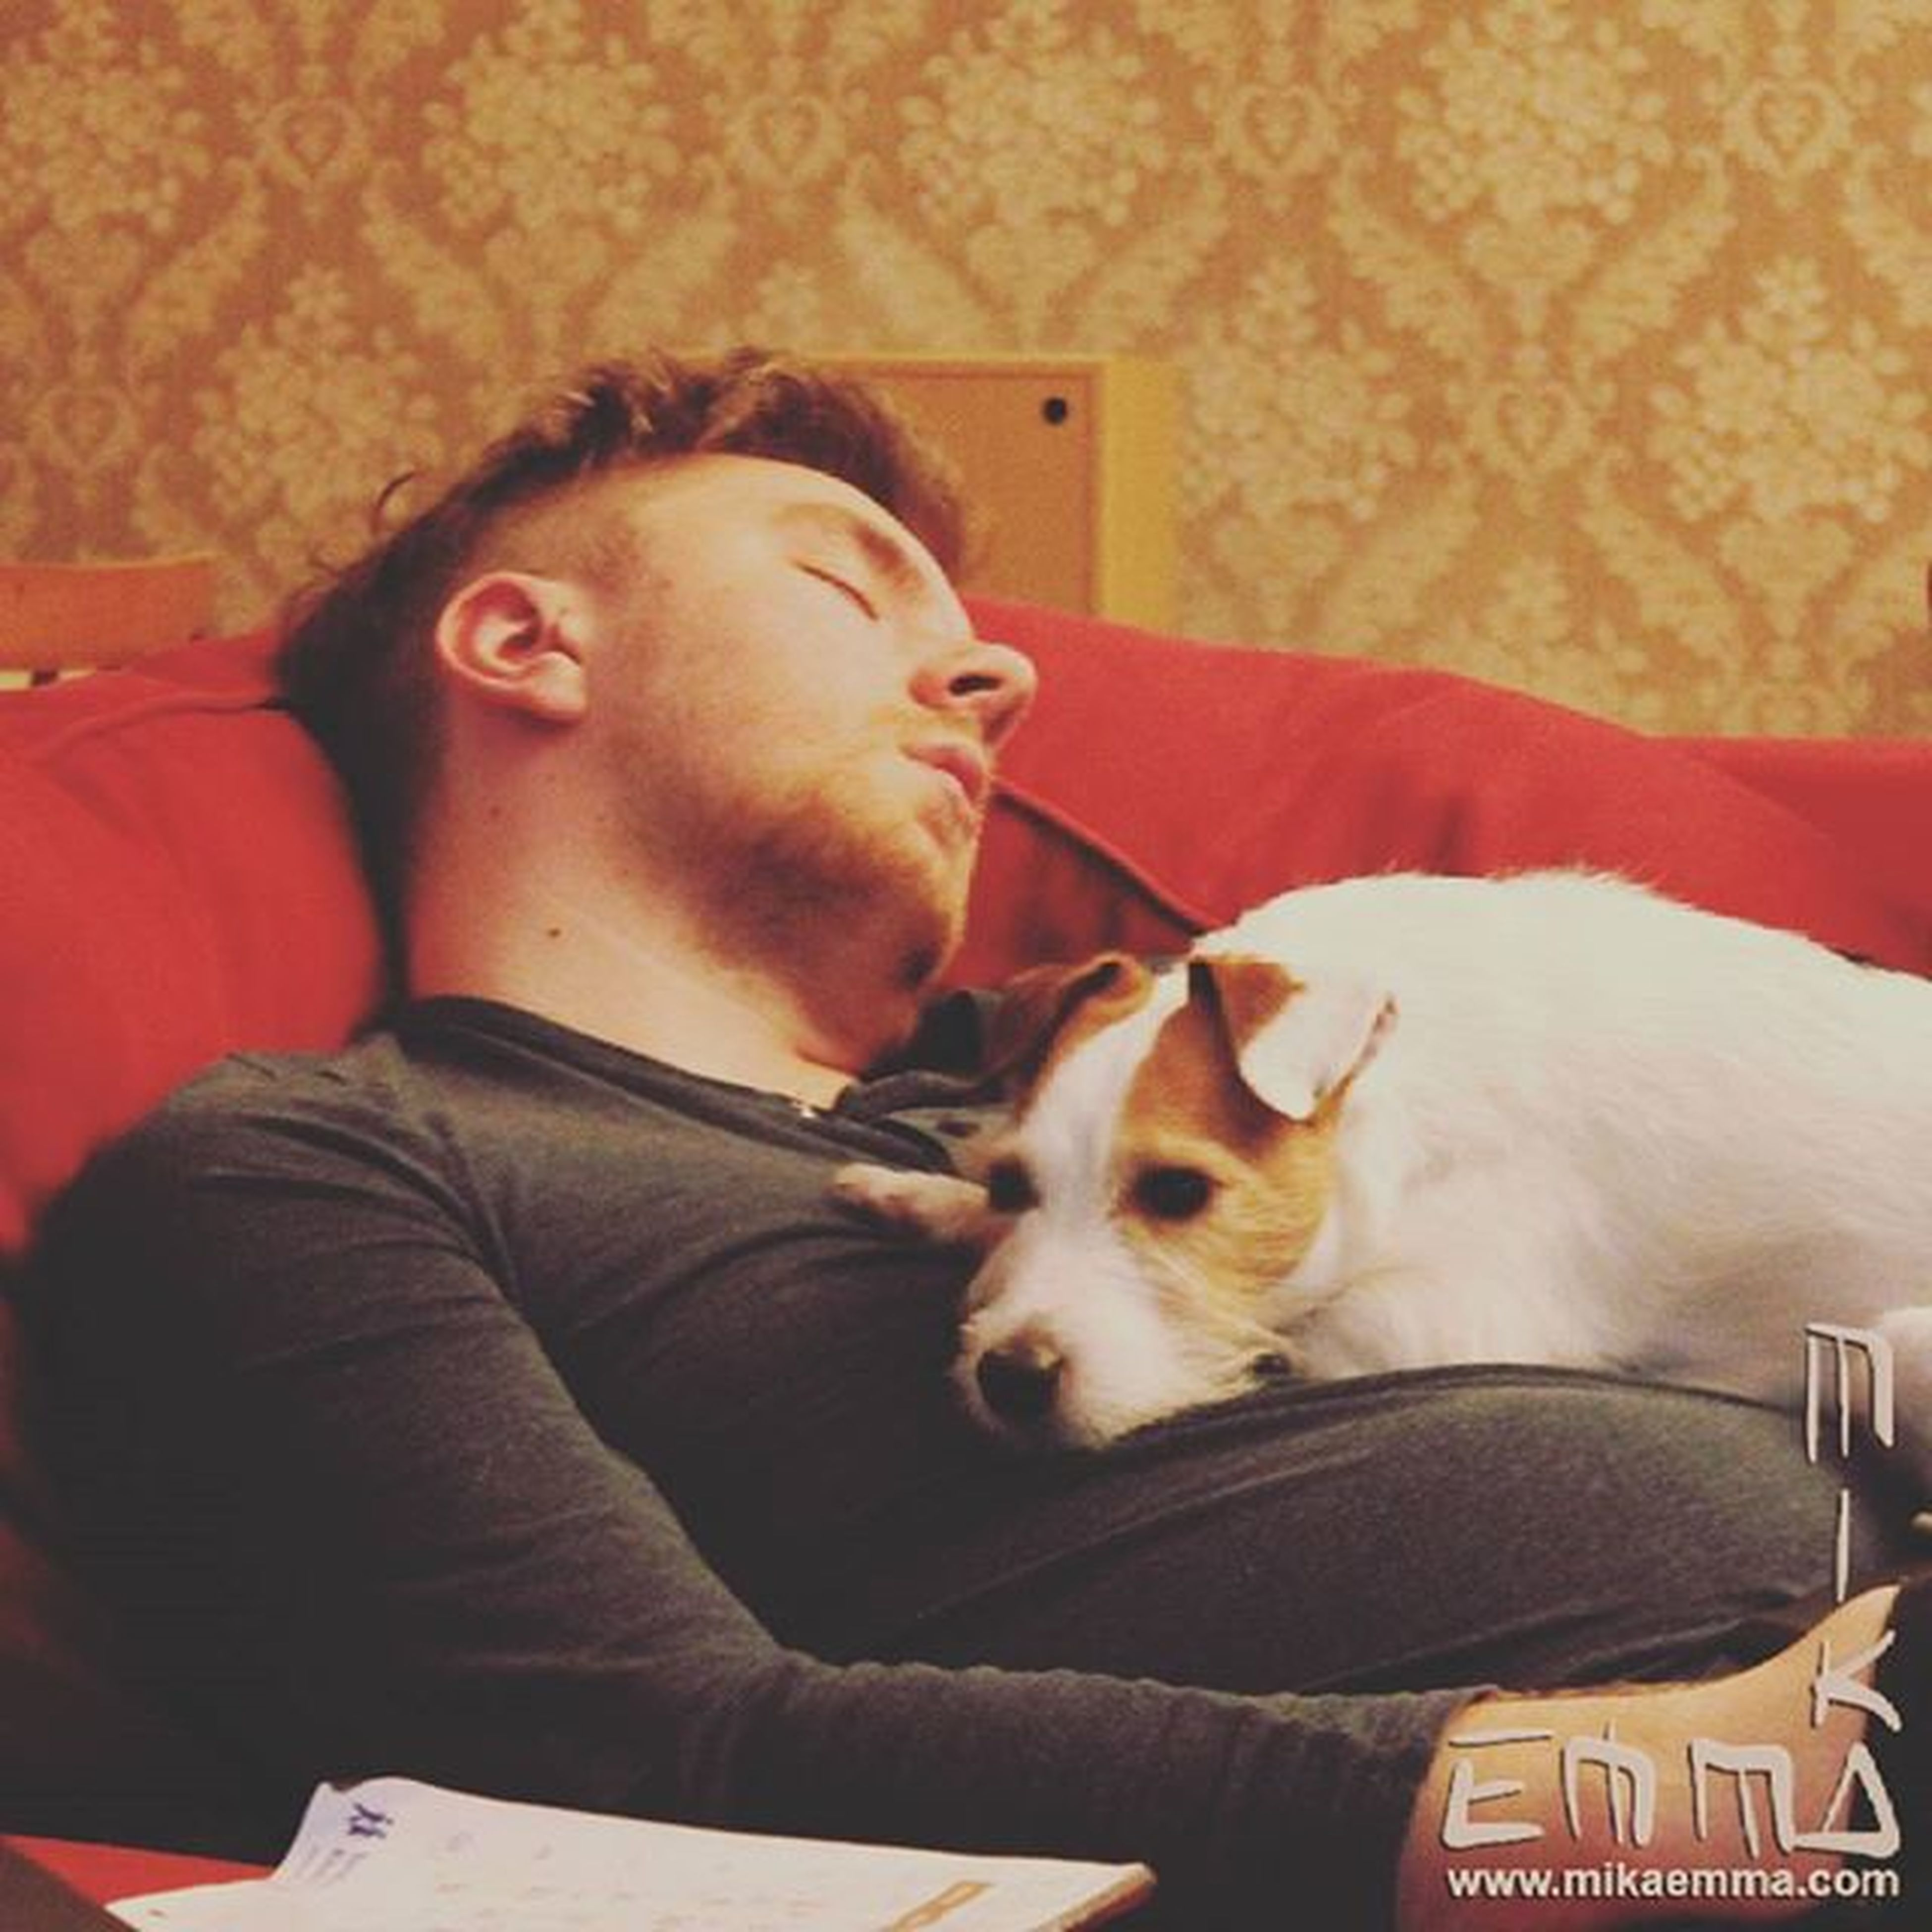 domestic animals, pets, animal themes, mammal, indoors, portrait, looking at camera, one animal, person, young adult, togetherness, relaxation, lifestyles, dog, home interior, young men, bonding, sitting